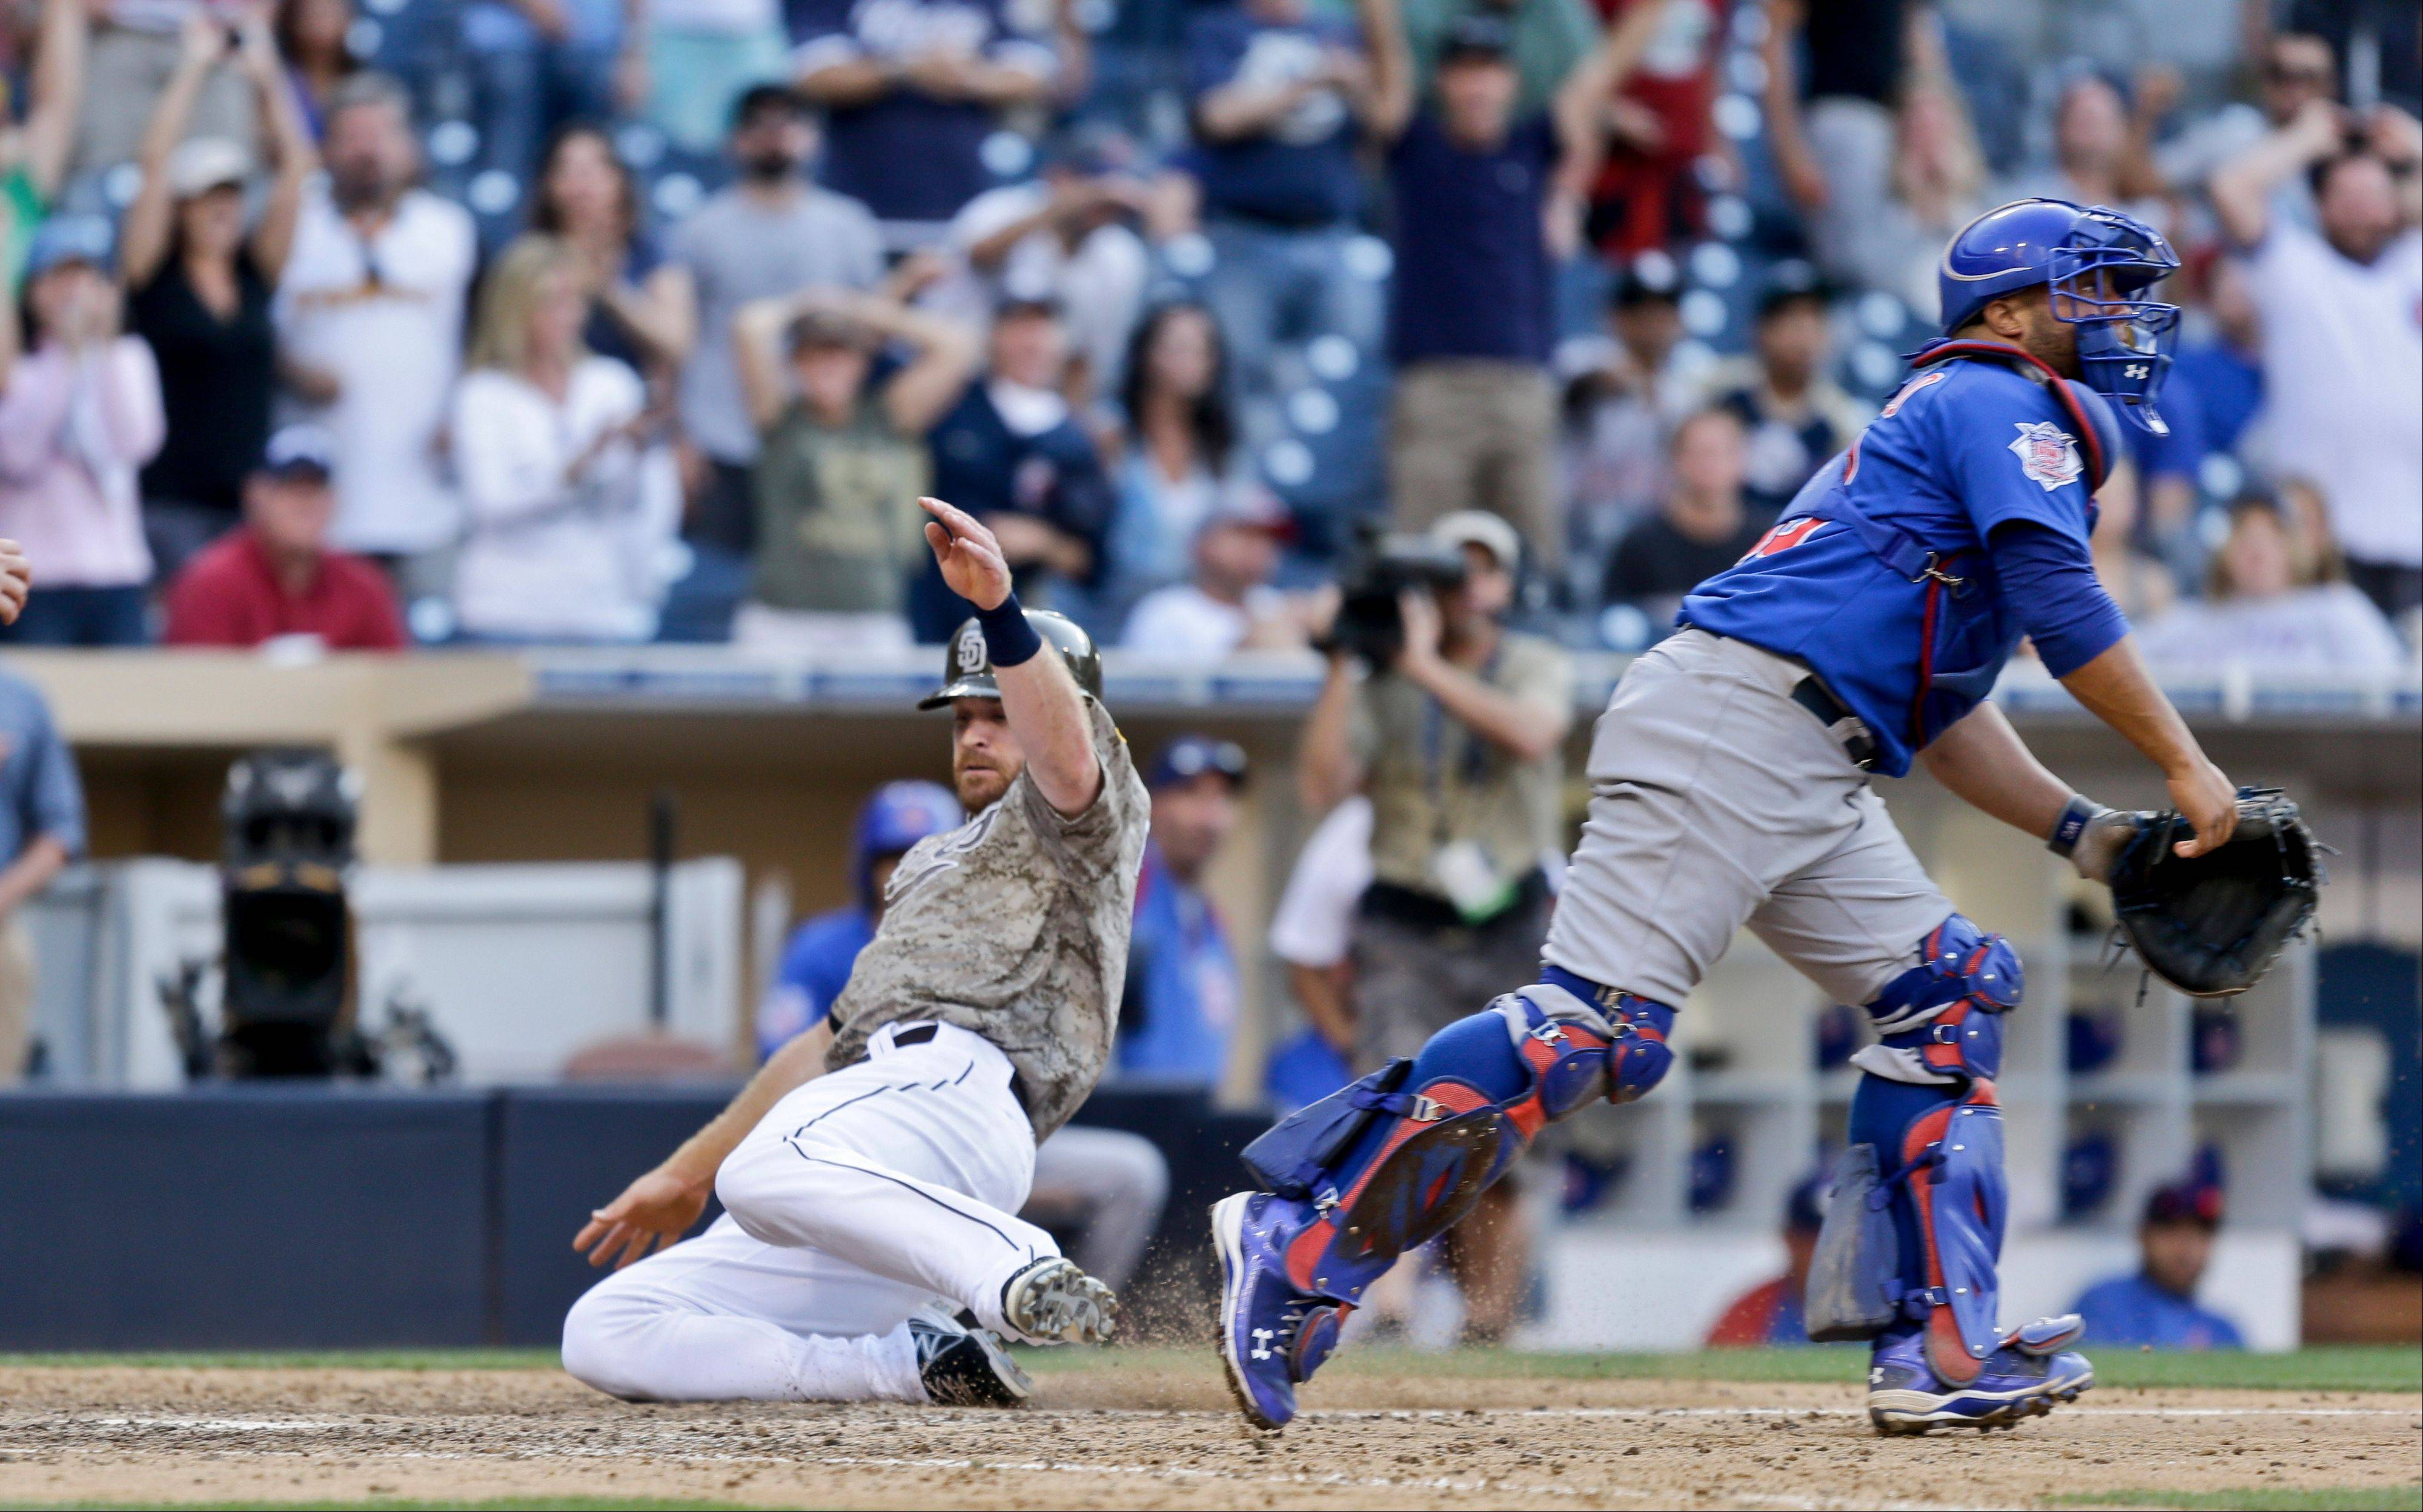 San Diego Padres' Logan Forsythe slides in safely with the game winning run as Chicago Cubs catcher Welington Castillo chases the late throw in the fifteenth inning of a baseball game won 3-2 by the Padres Sunday, Aug. 25, 2013, in San Diego.